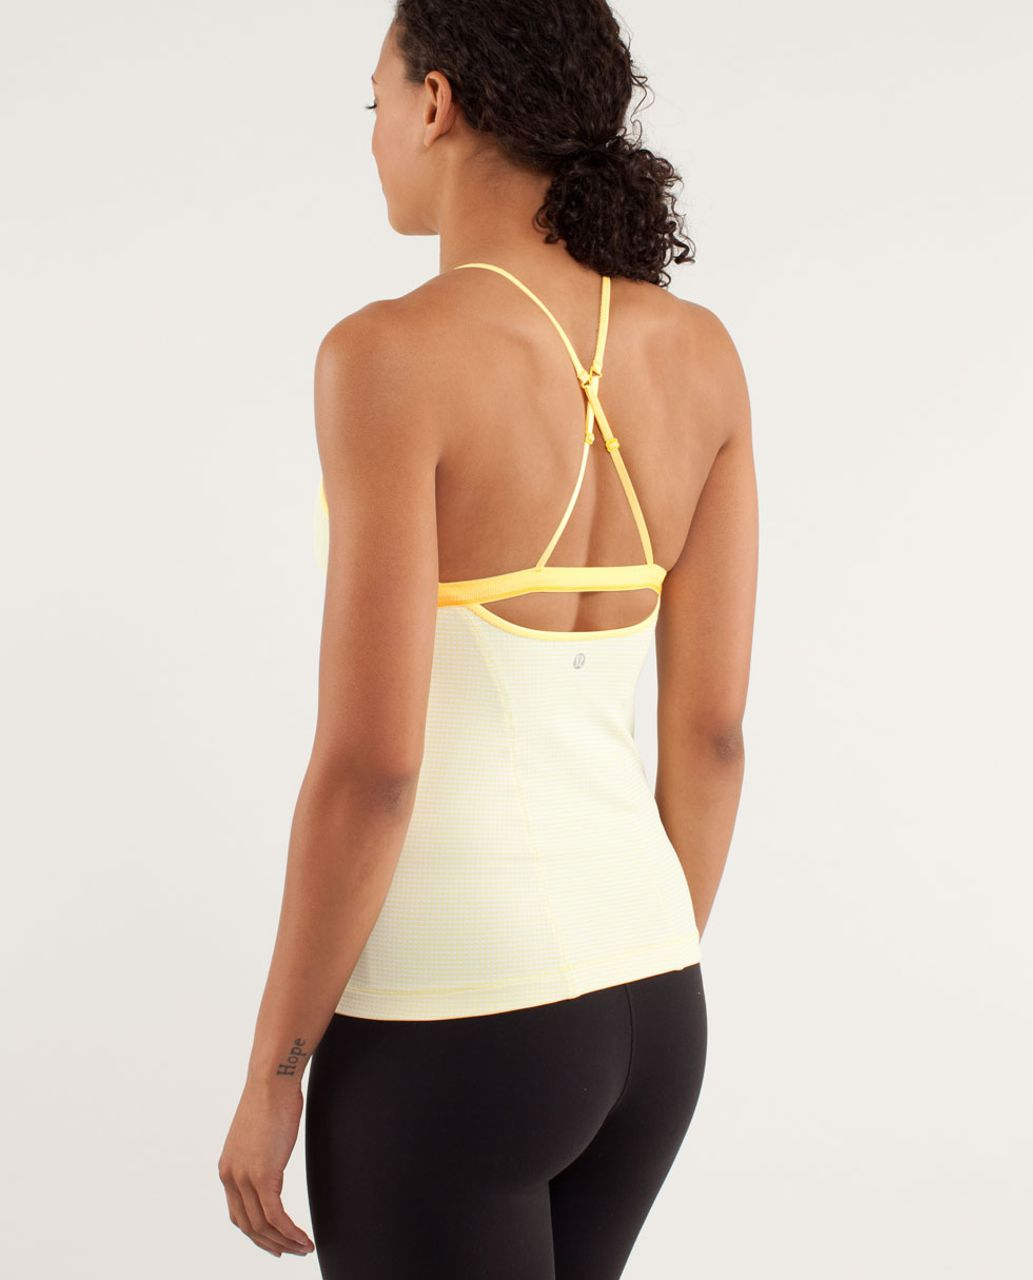 Lululemon Love-Ly Tank - Mellow Lemon / Burning Yellow